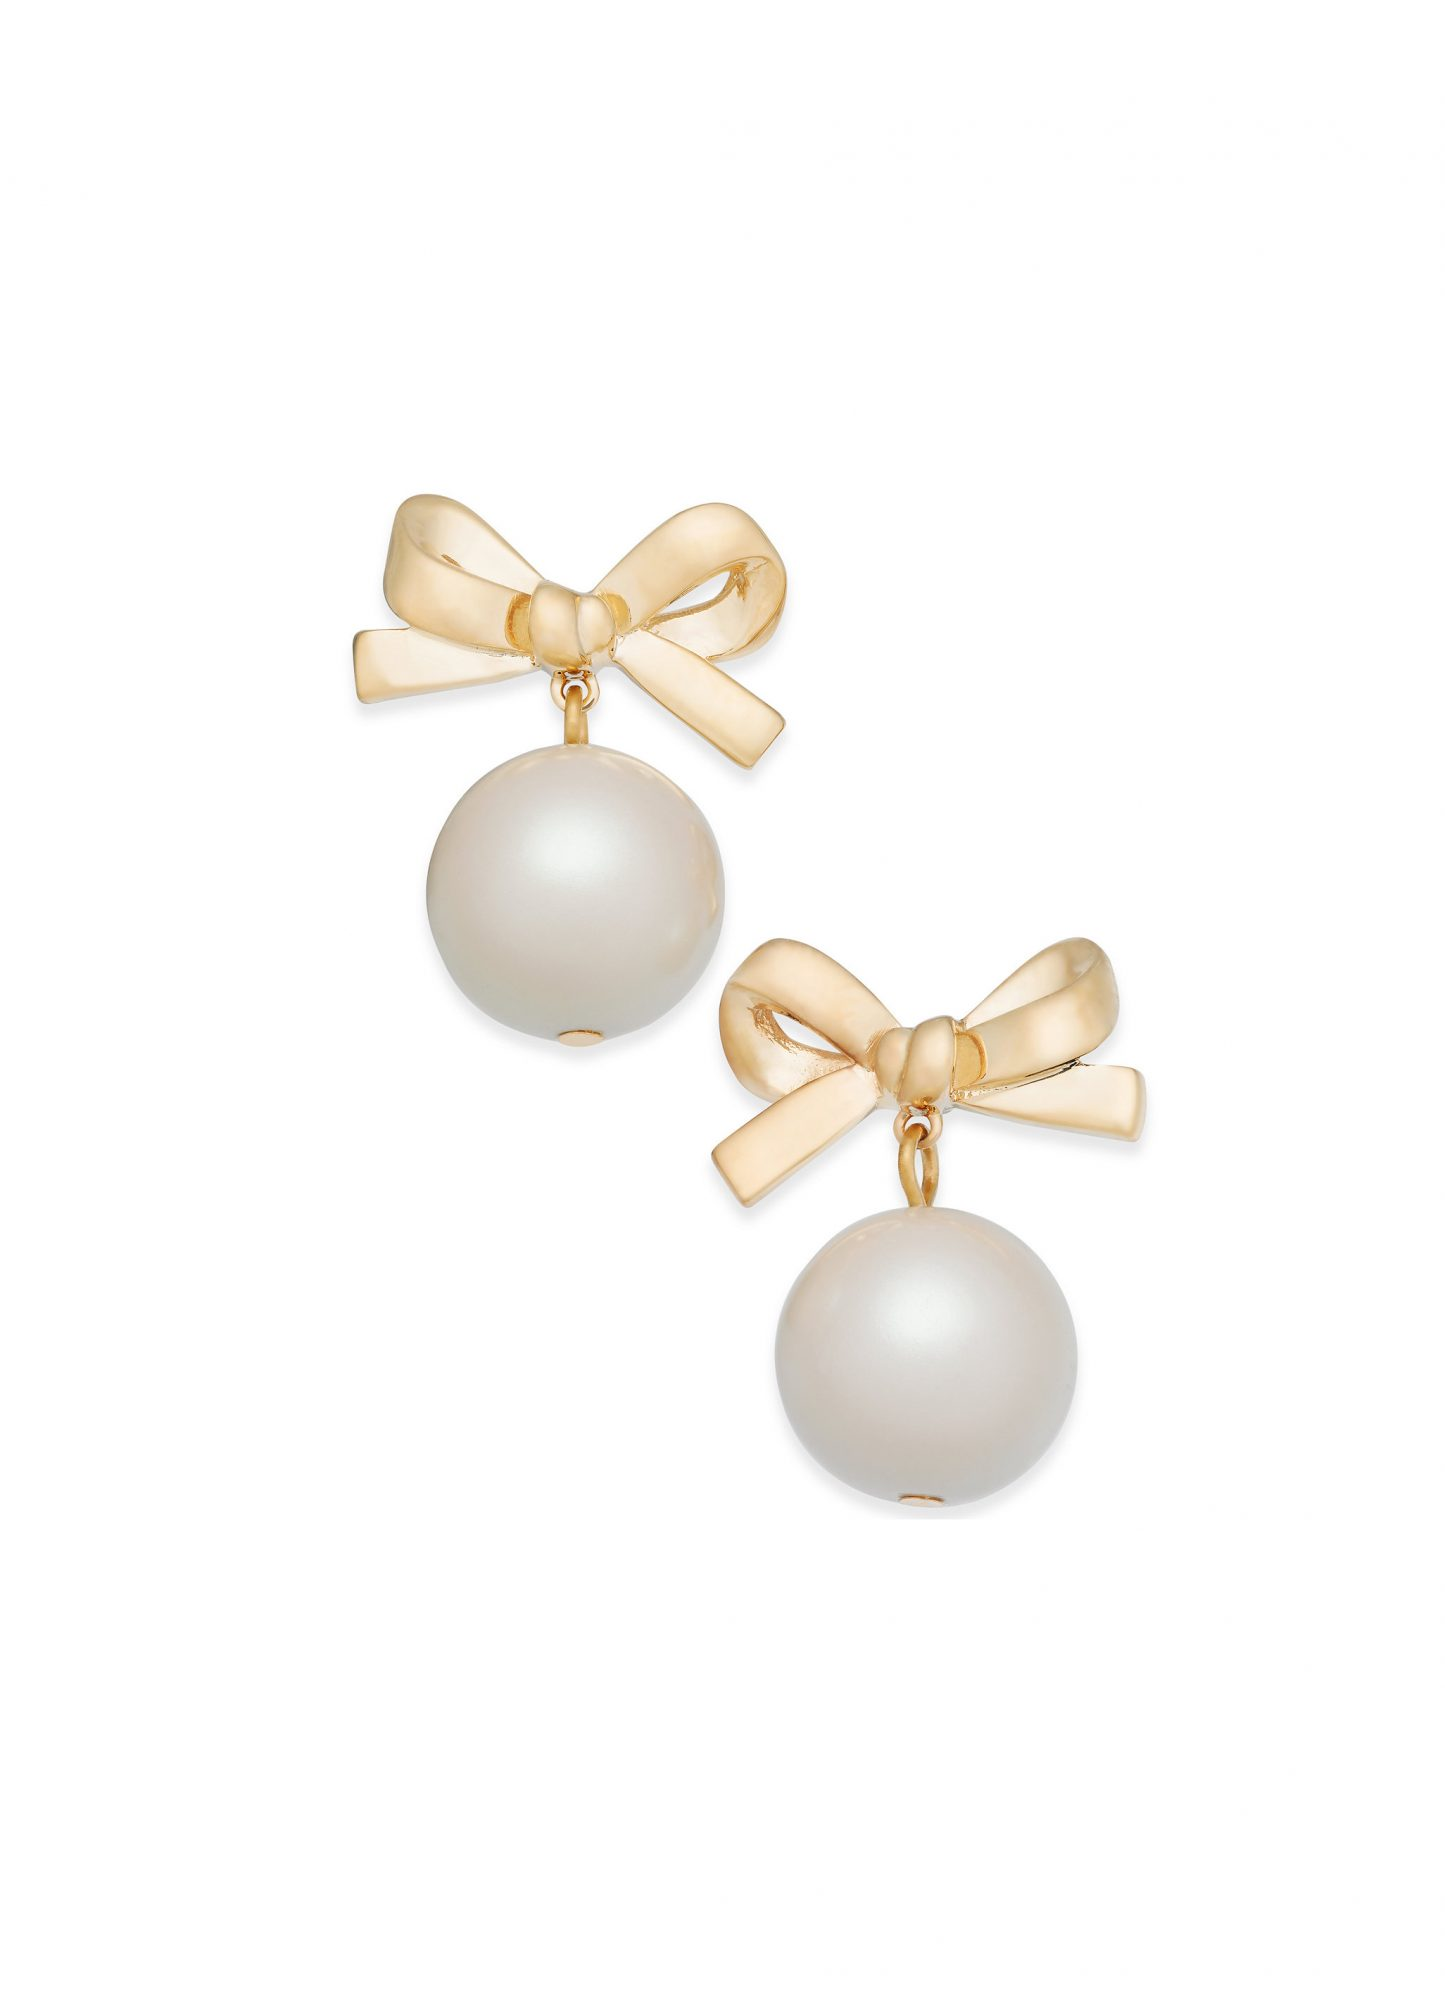 Kate Spade New York 14k Gold-Plated Imitation Pearl Bow Drop Earrings